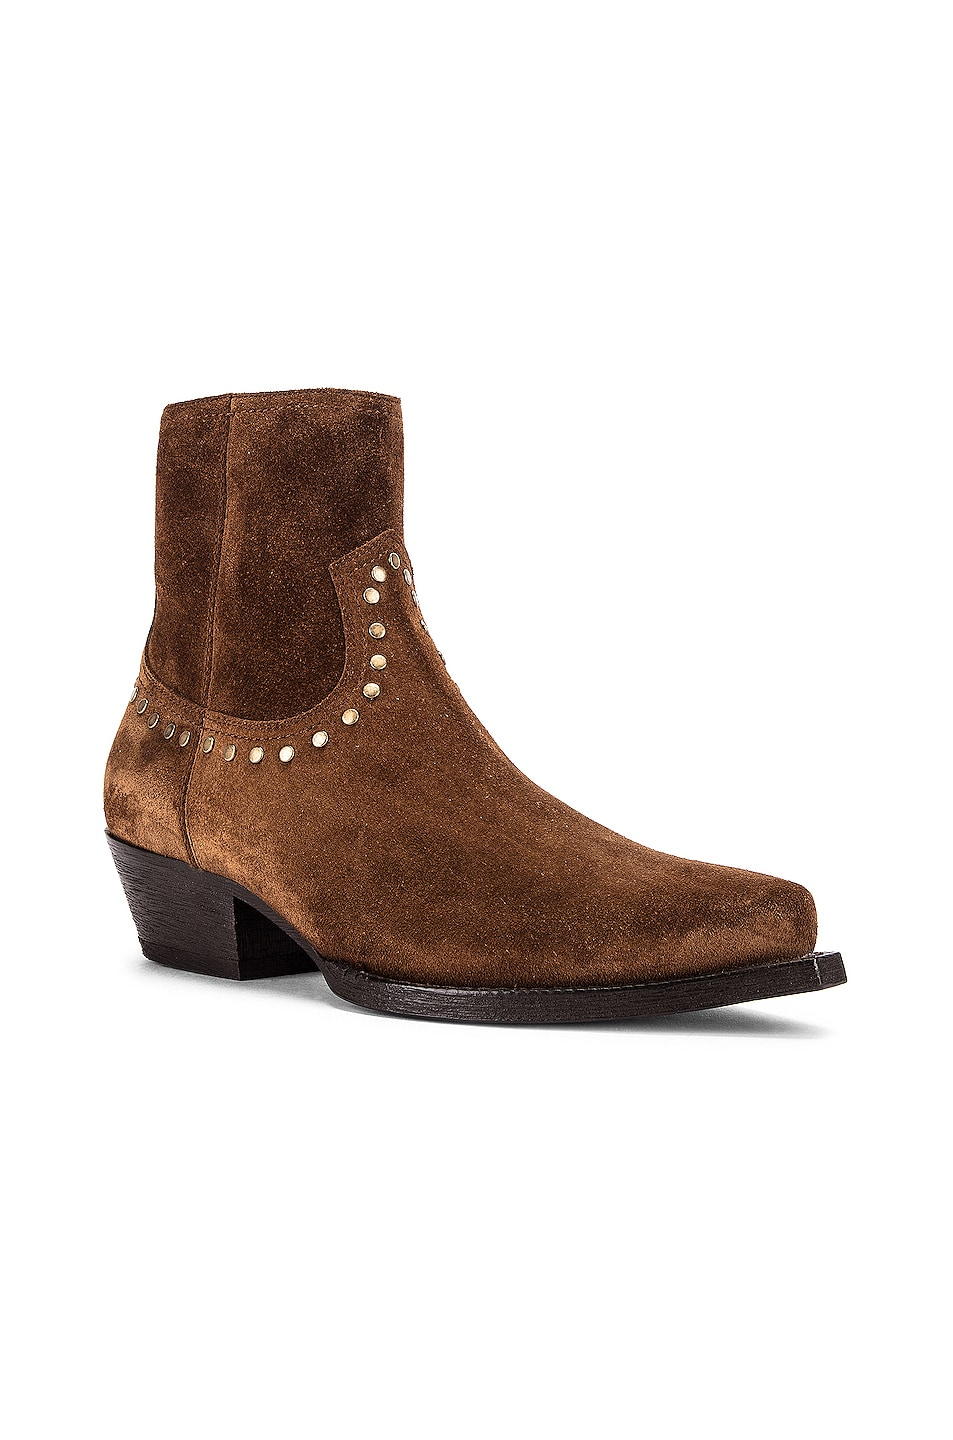 Image 2 of Saint Laurent Lukas Zip Stud Ankle Booties in Land